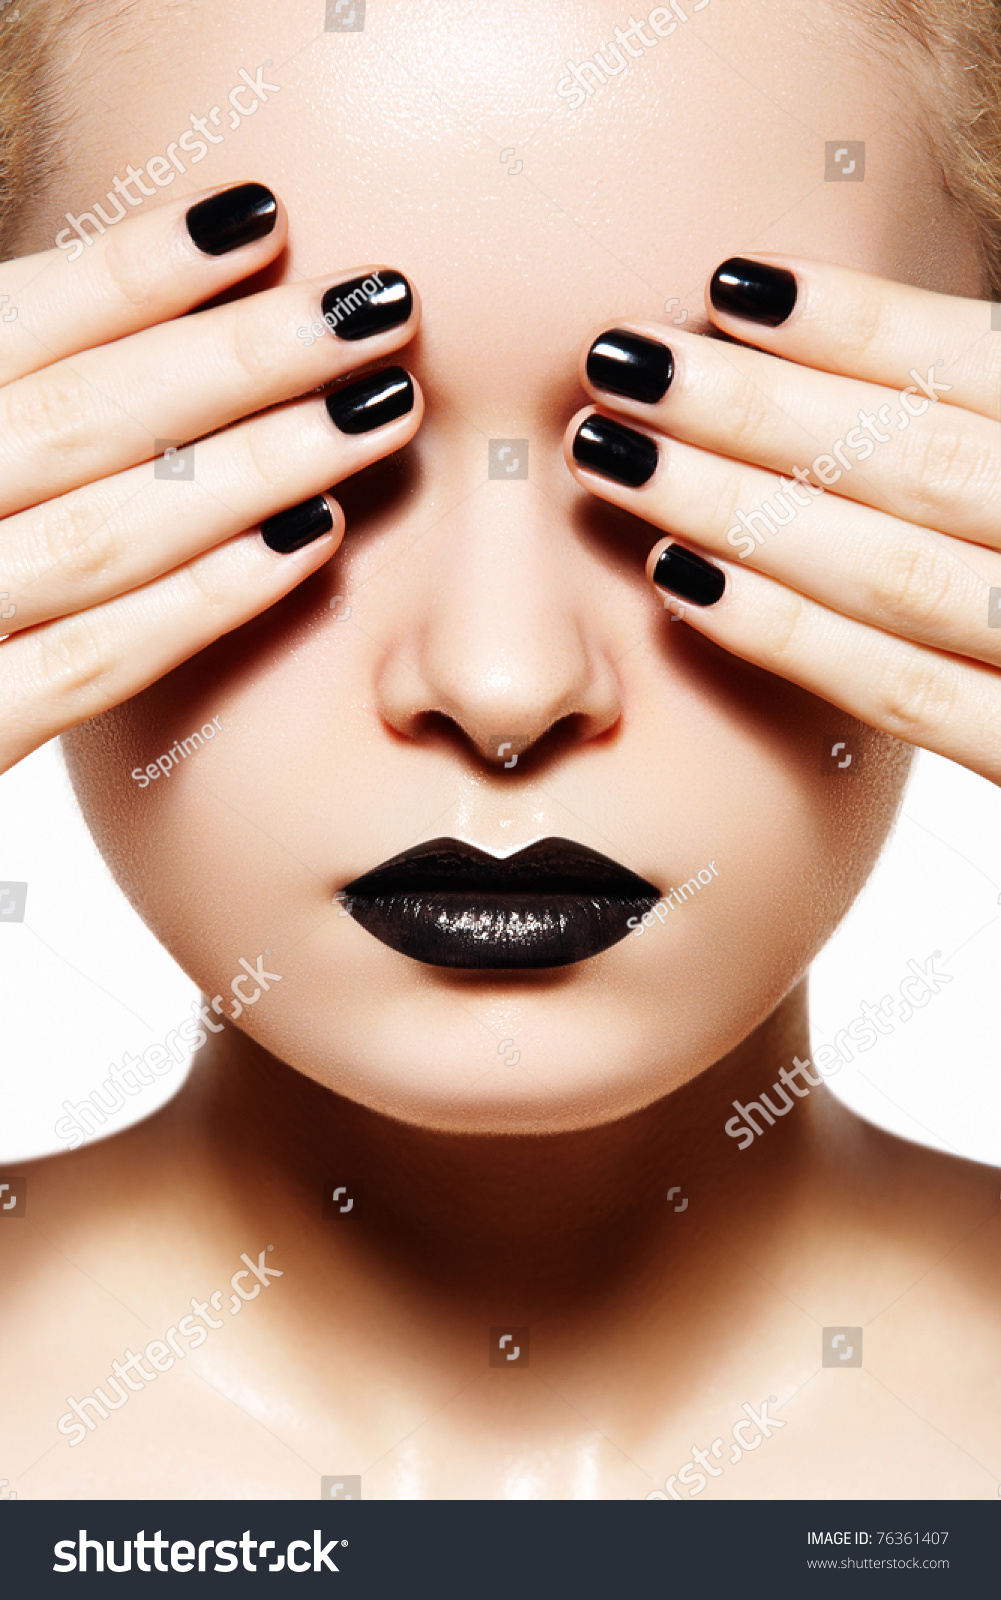 High Fashion Style Manicure Cosmetics Makeup Stock Photo 76361407 Shutterstock